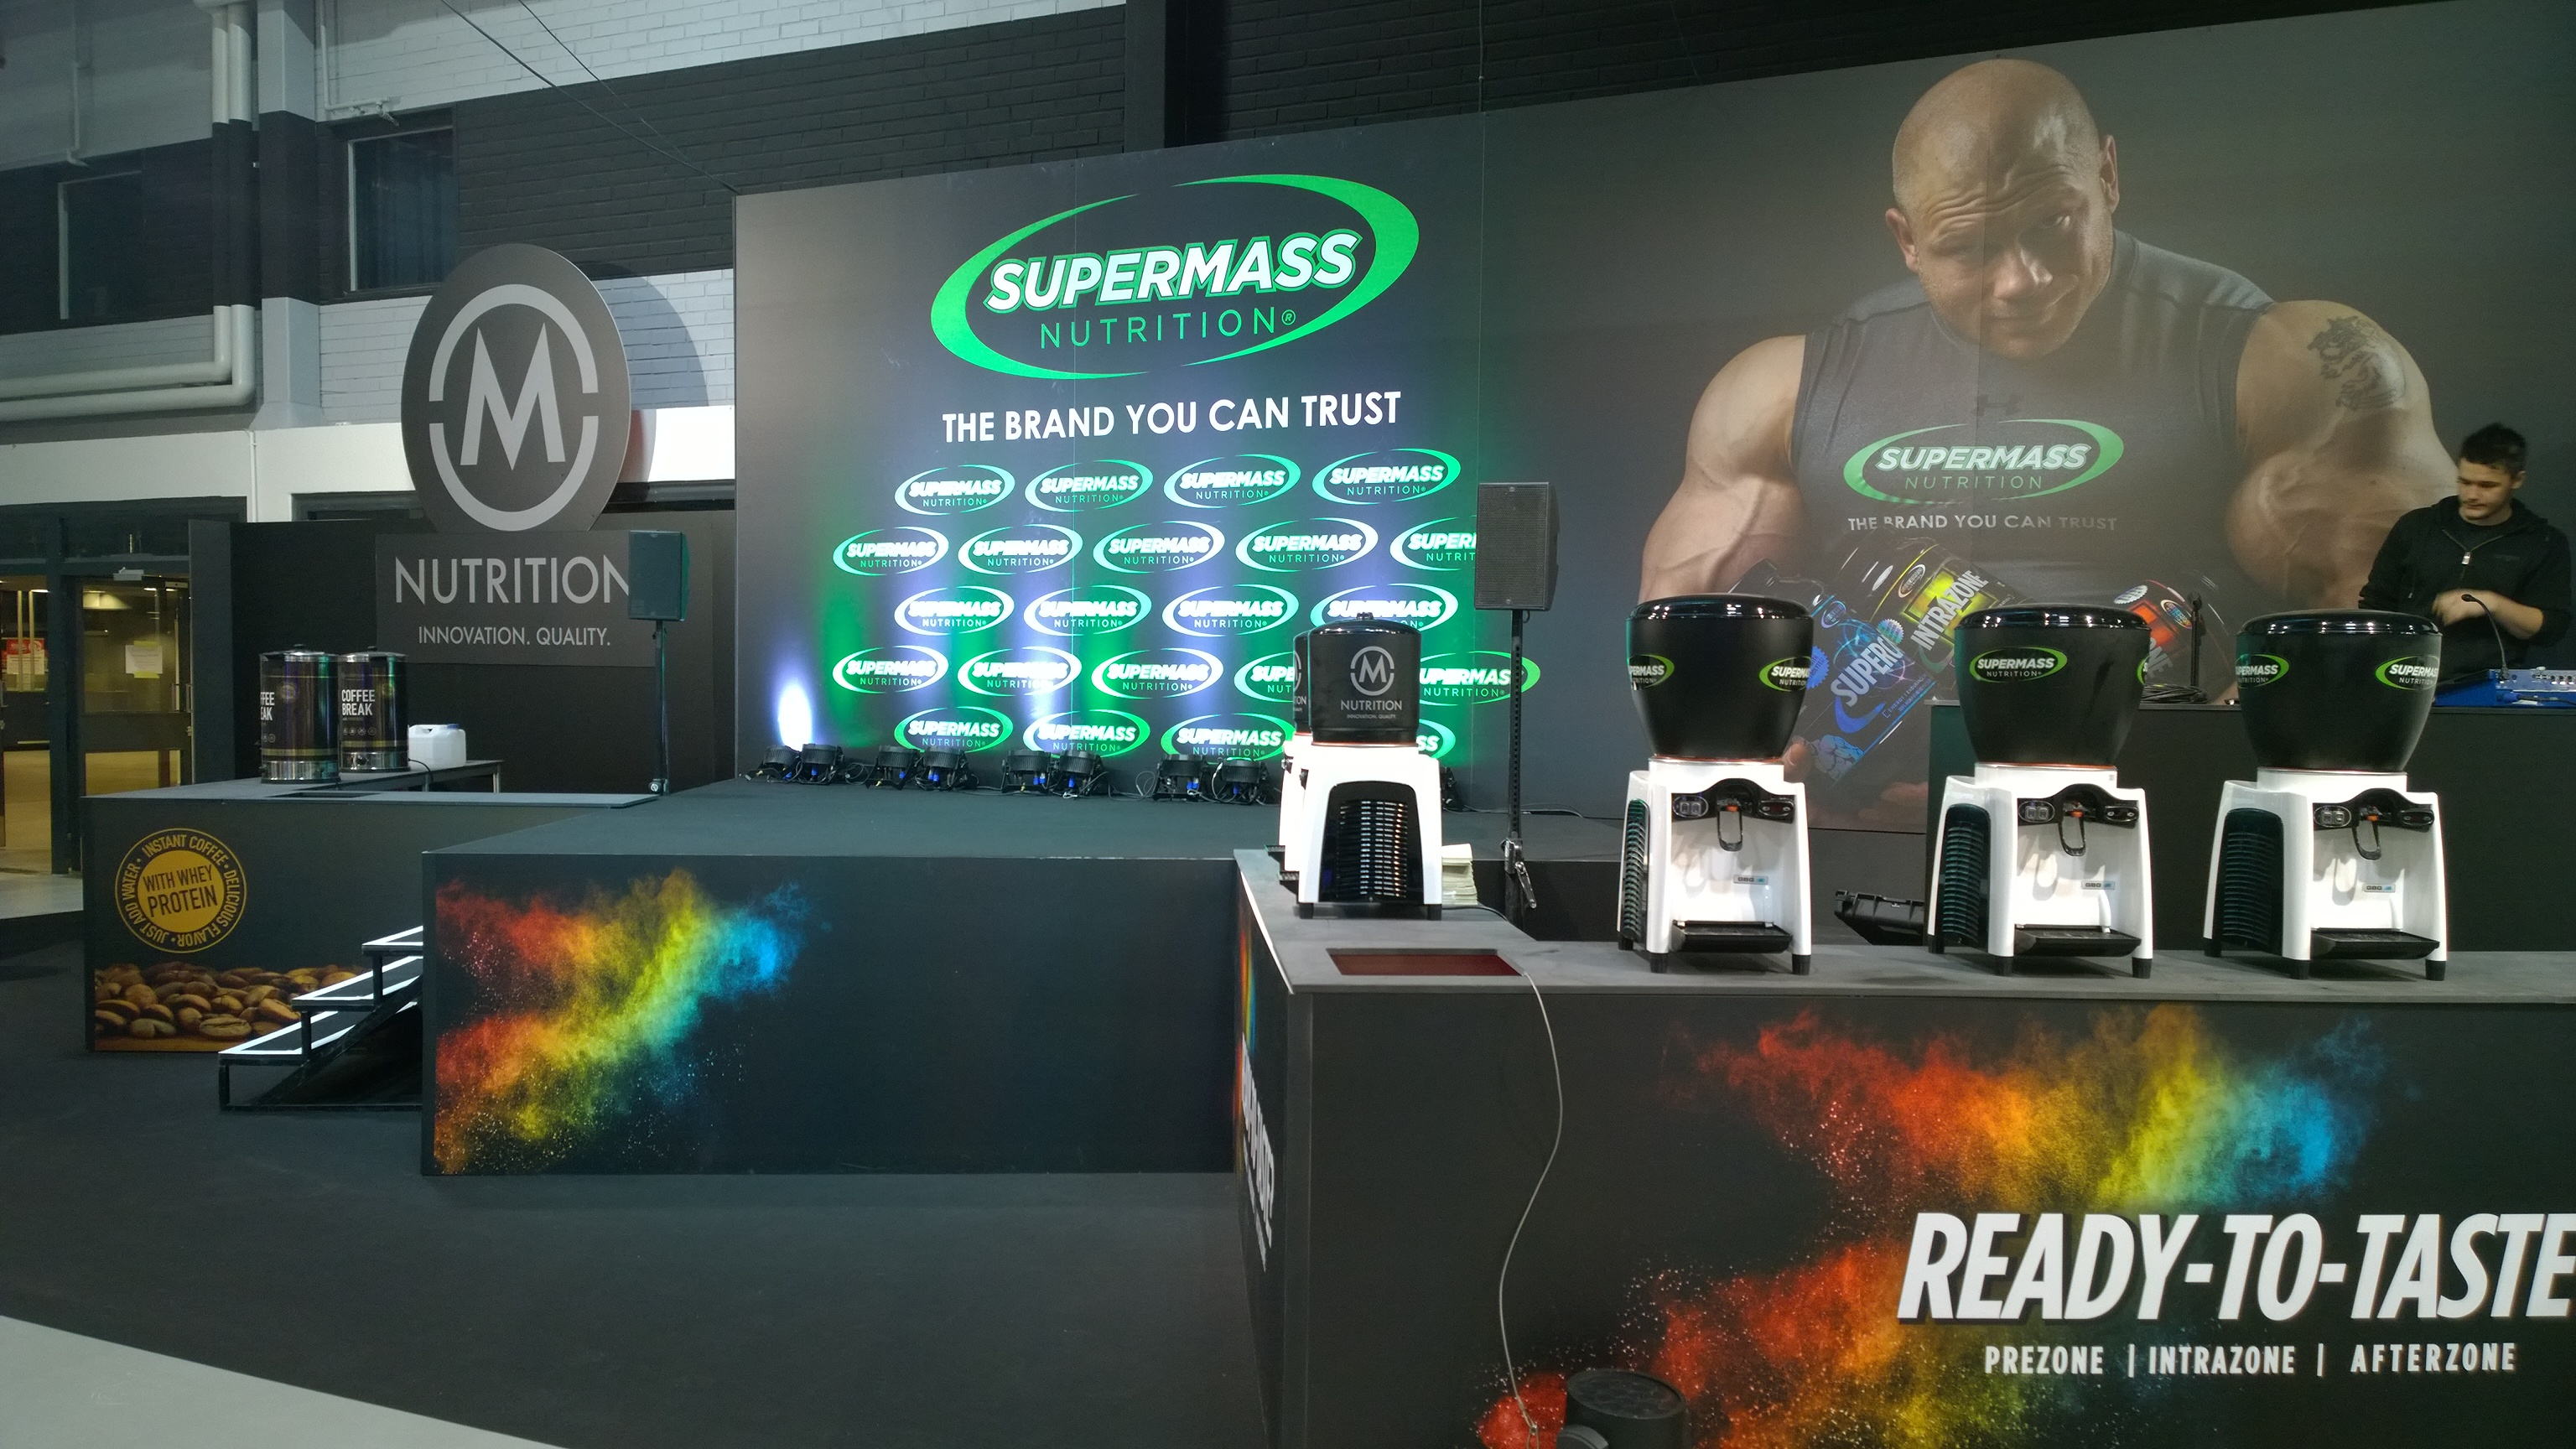 Supermass/M-nutrition